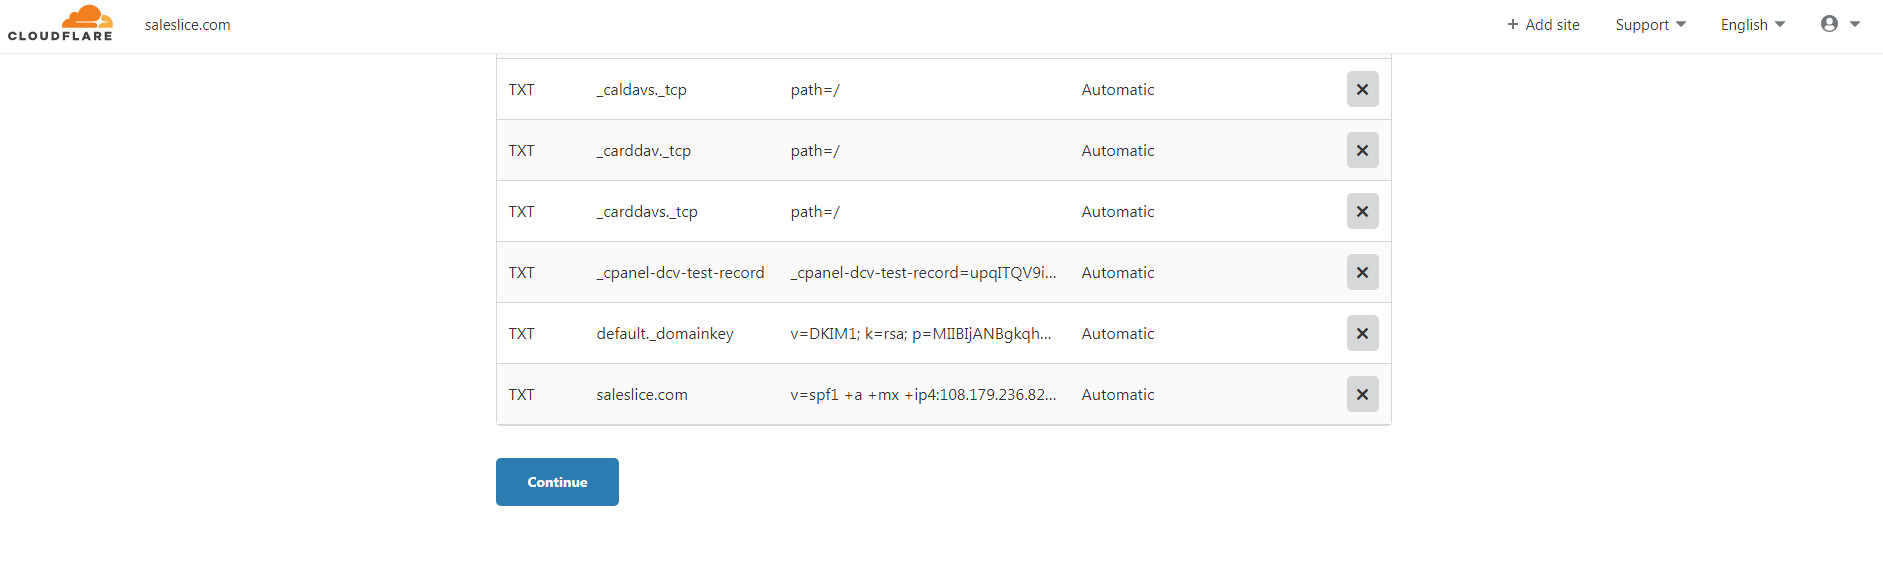 Step 1: Setting up SSL through CloudFlare